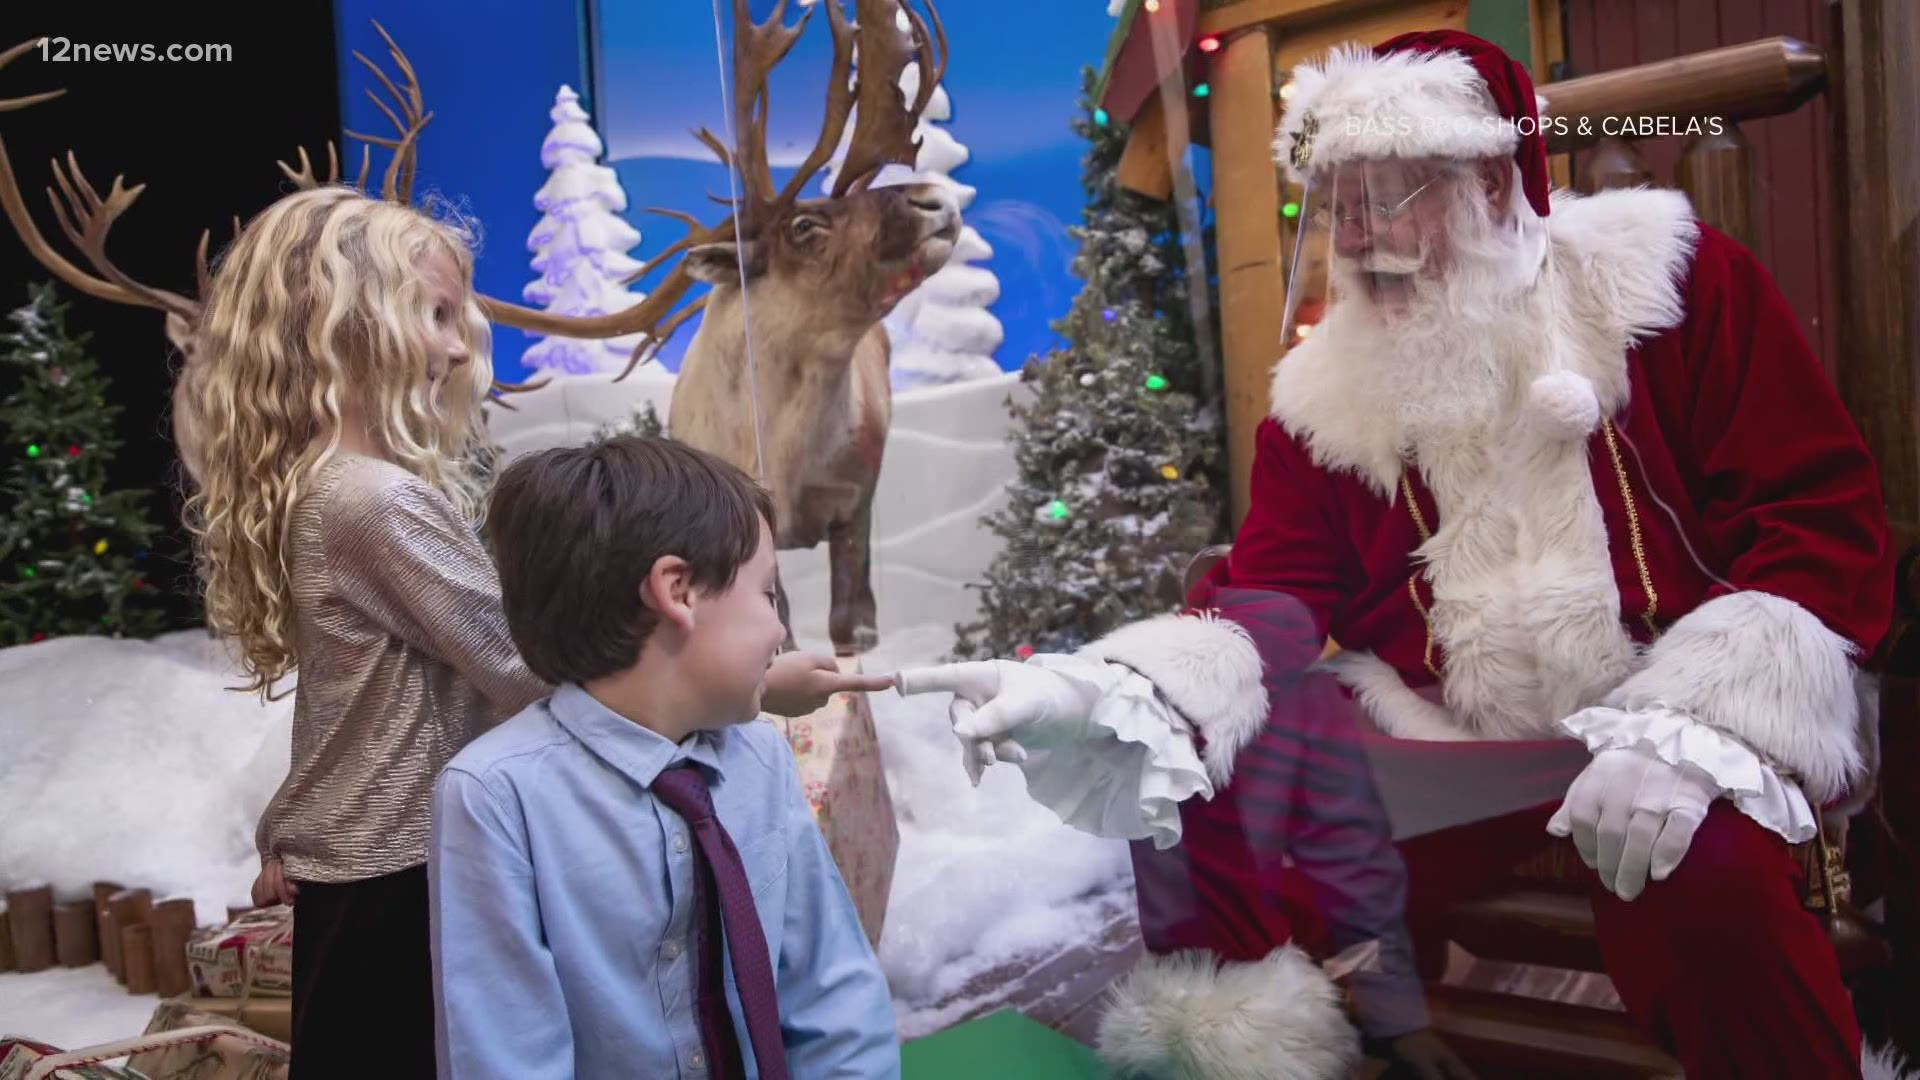 Visits with Santa will look different in 2020 | 12news.com